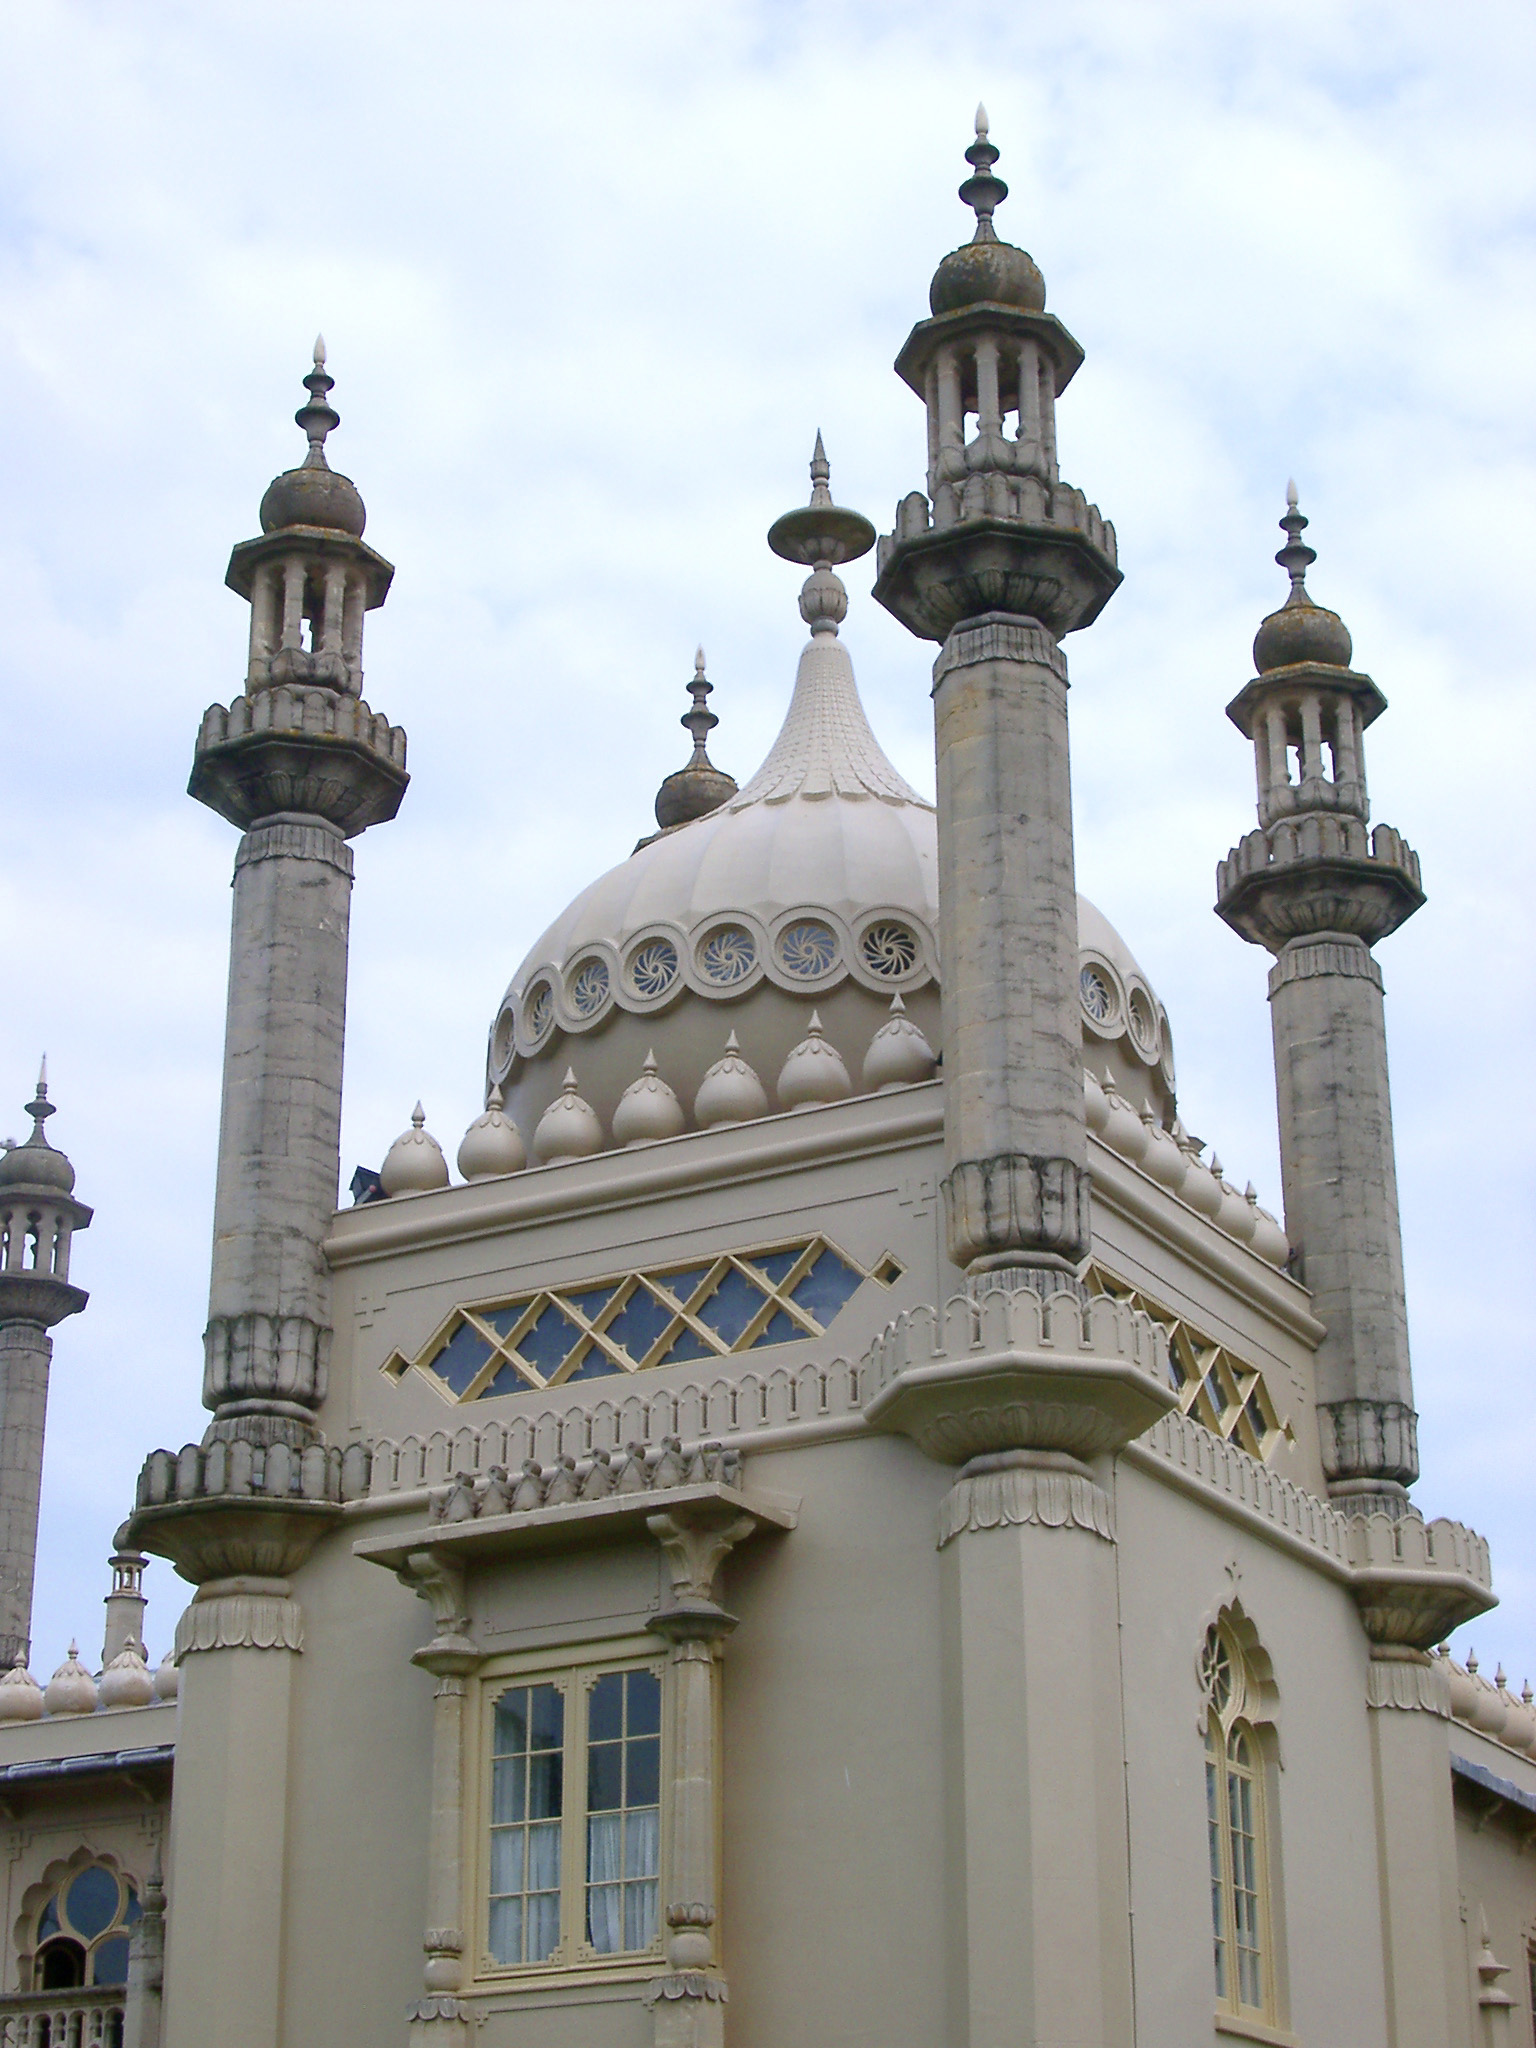 Free Stock Photo Of Dome And Minarets Of Royal Pavilion In